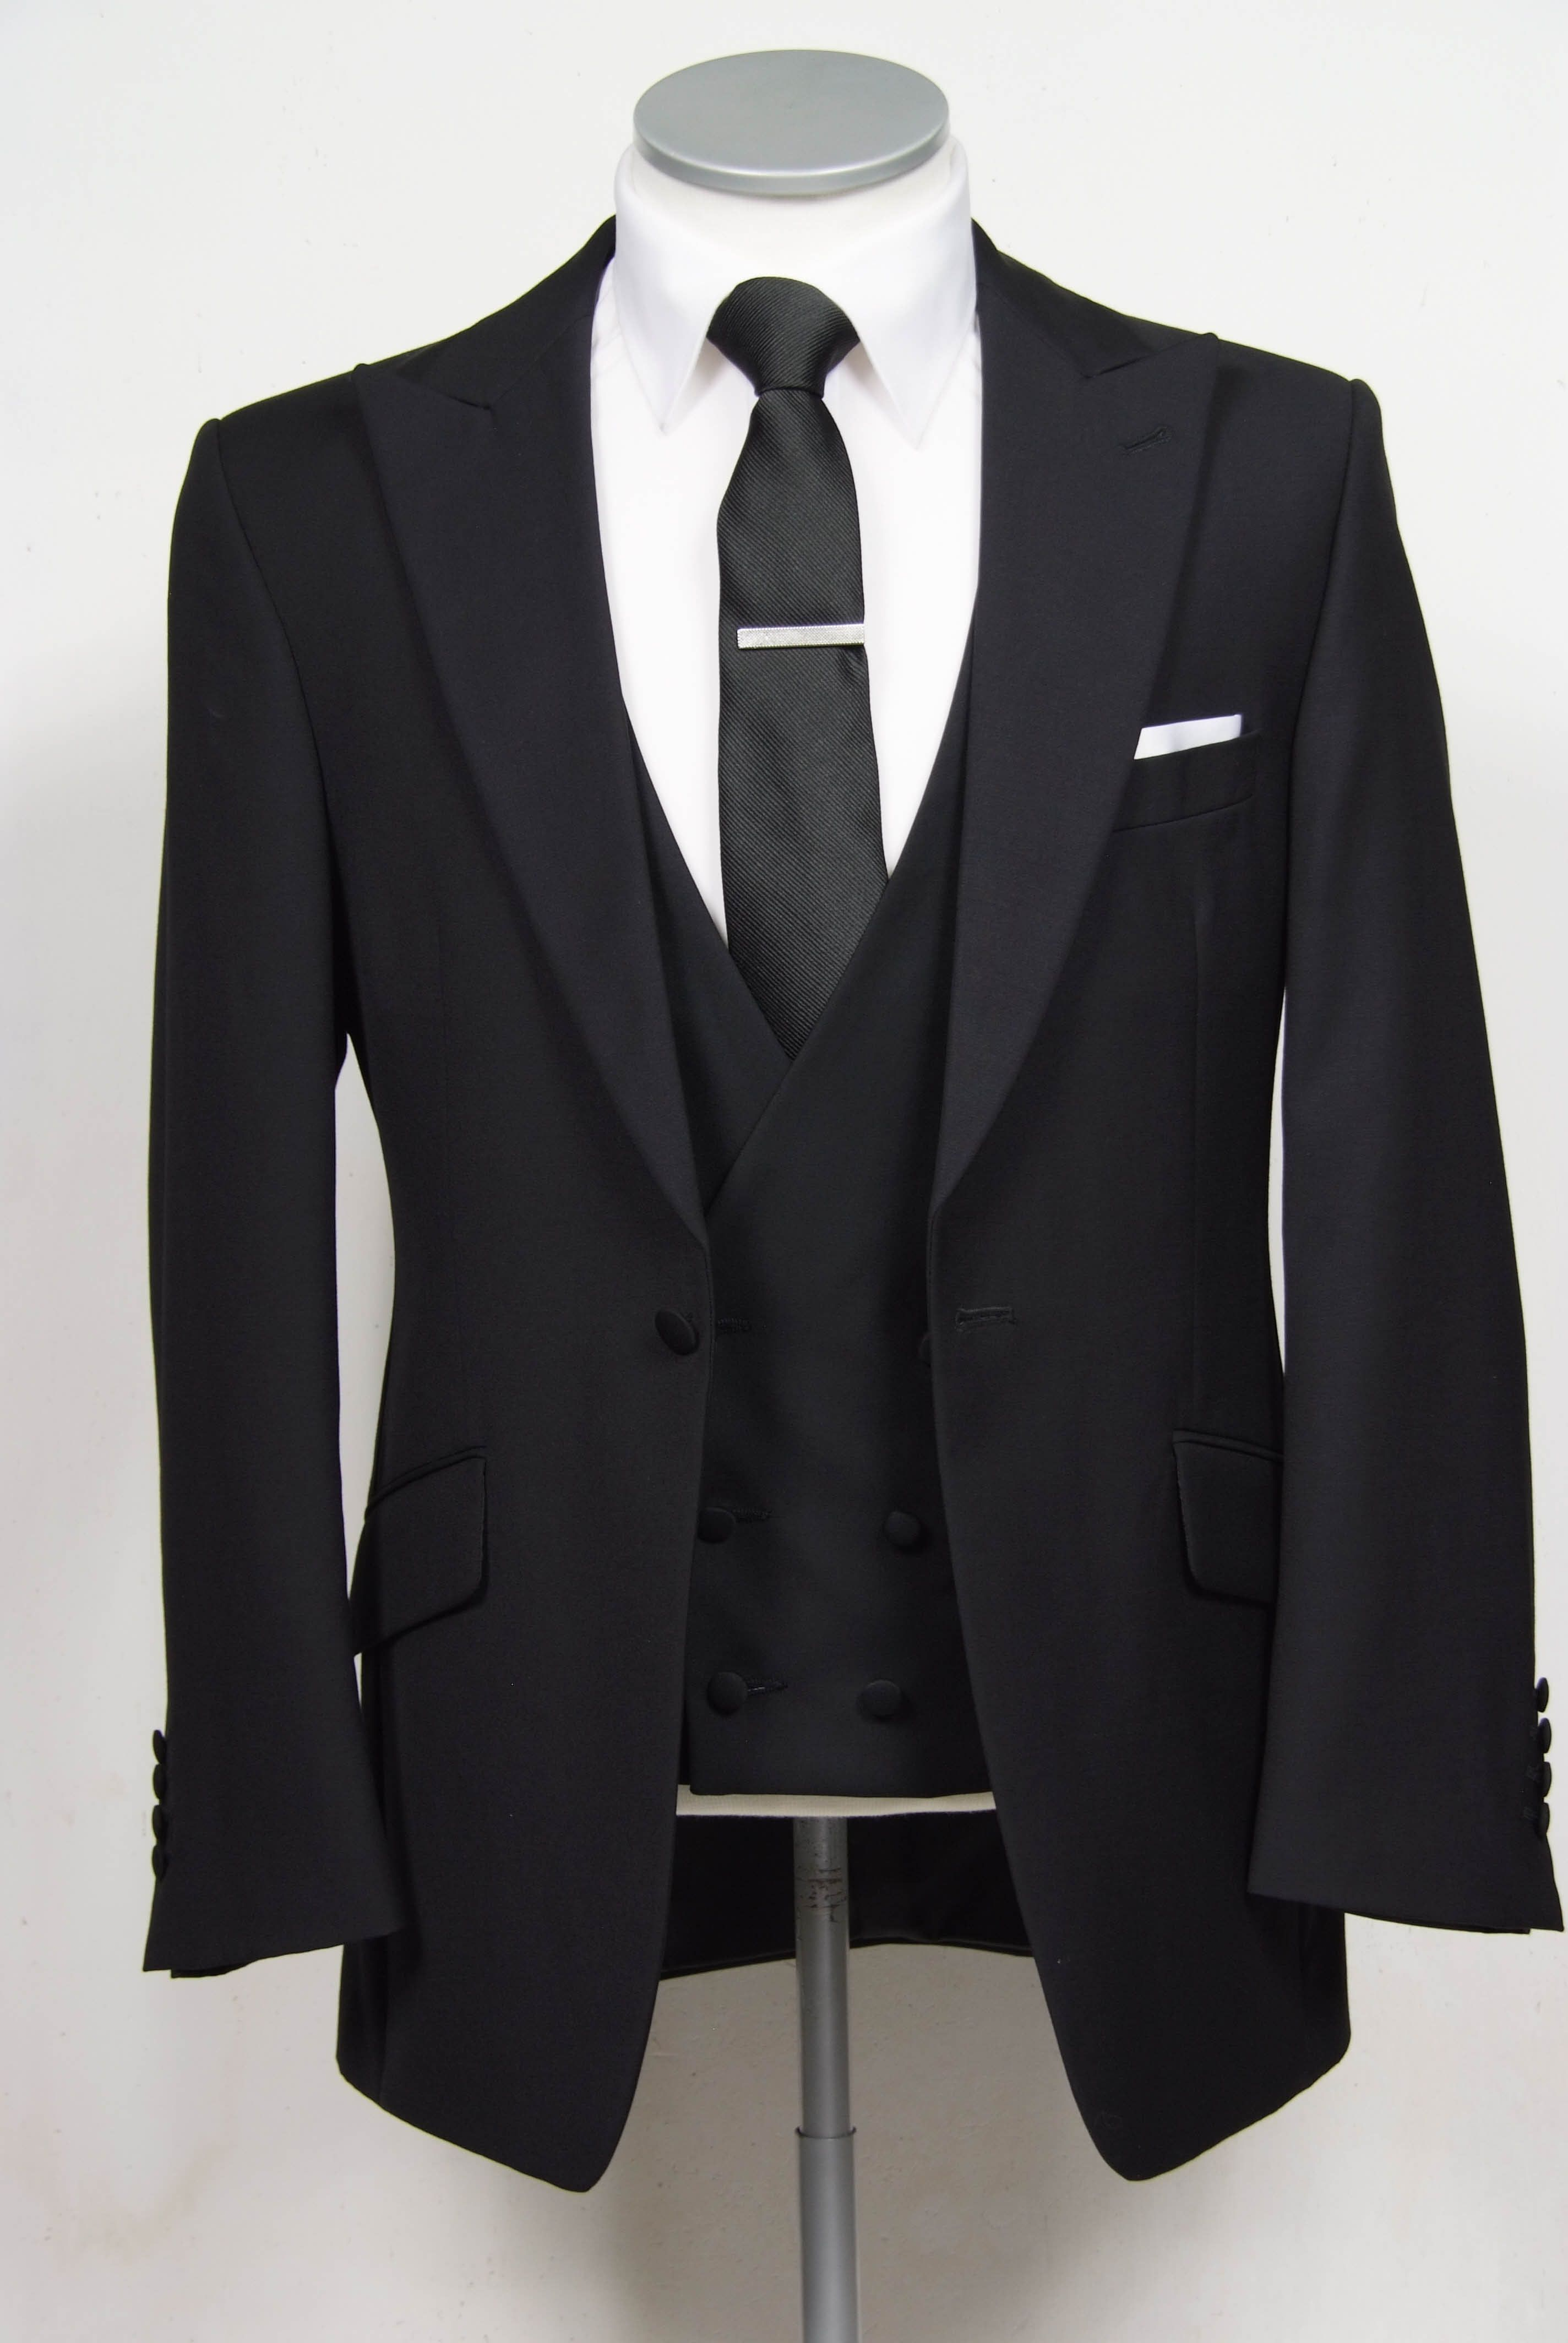 Grooms wedding suit in black slim fit light weight wool for Can you wear cufflinks on a regular shirt